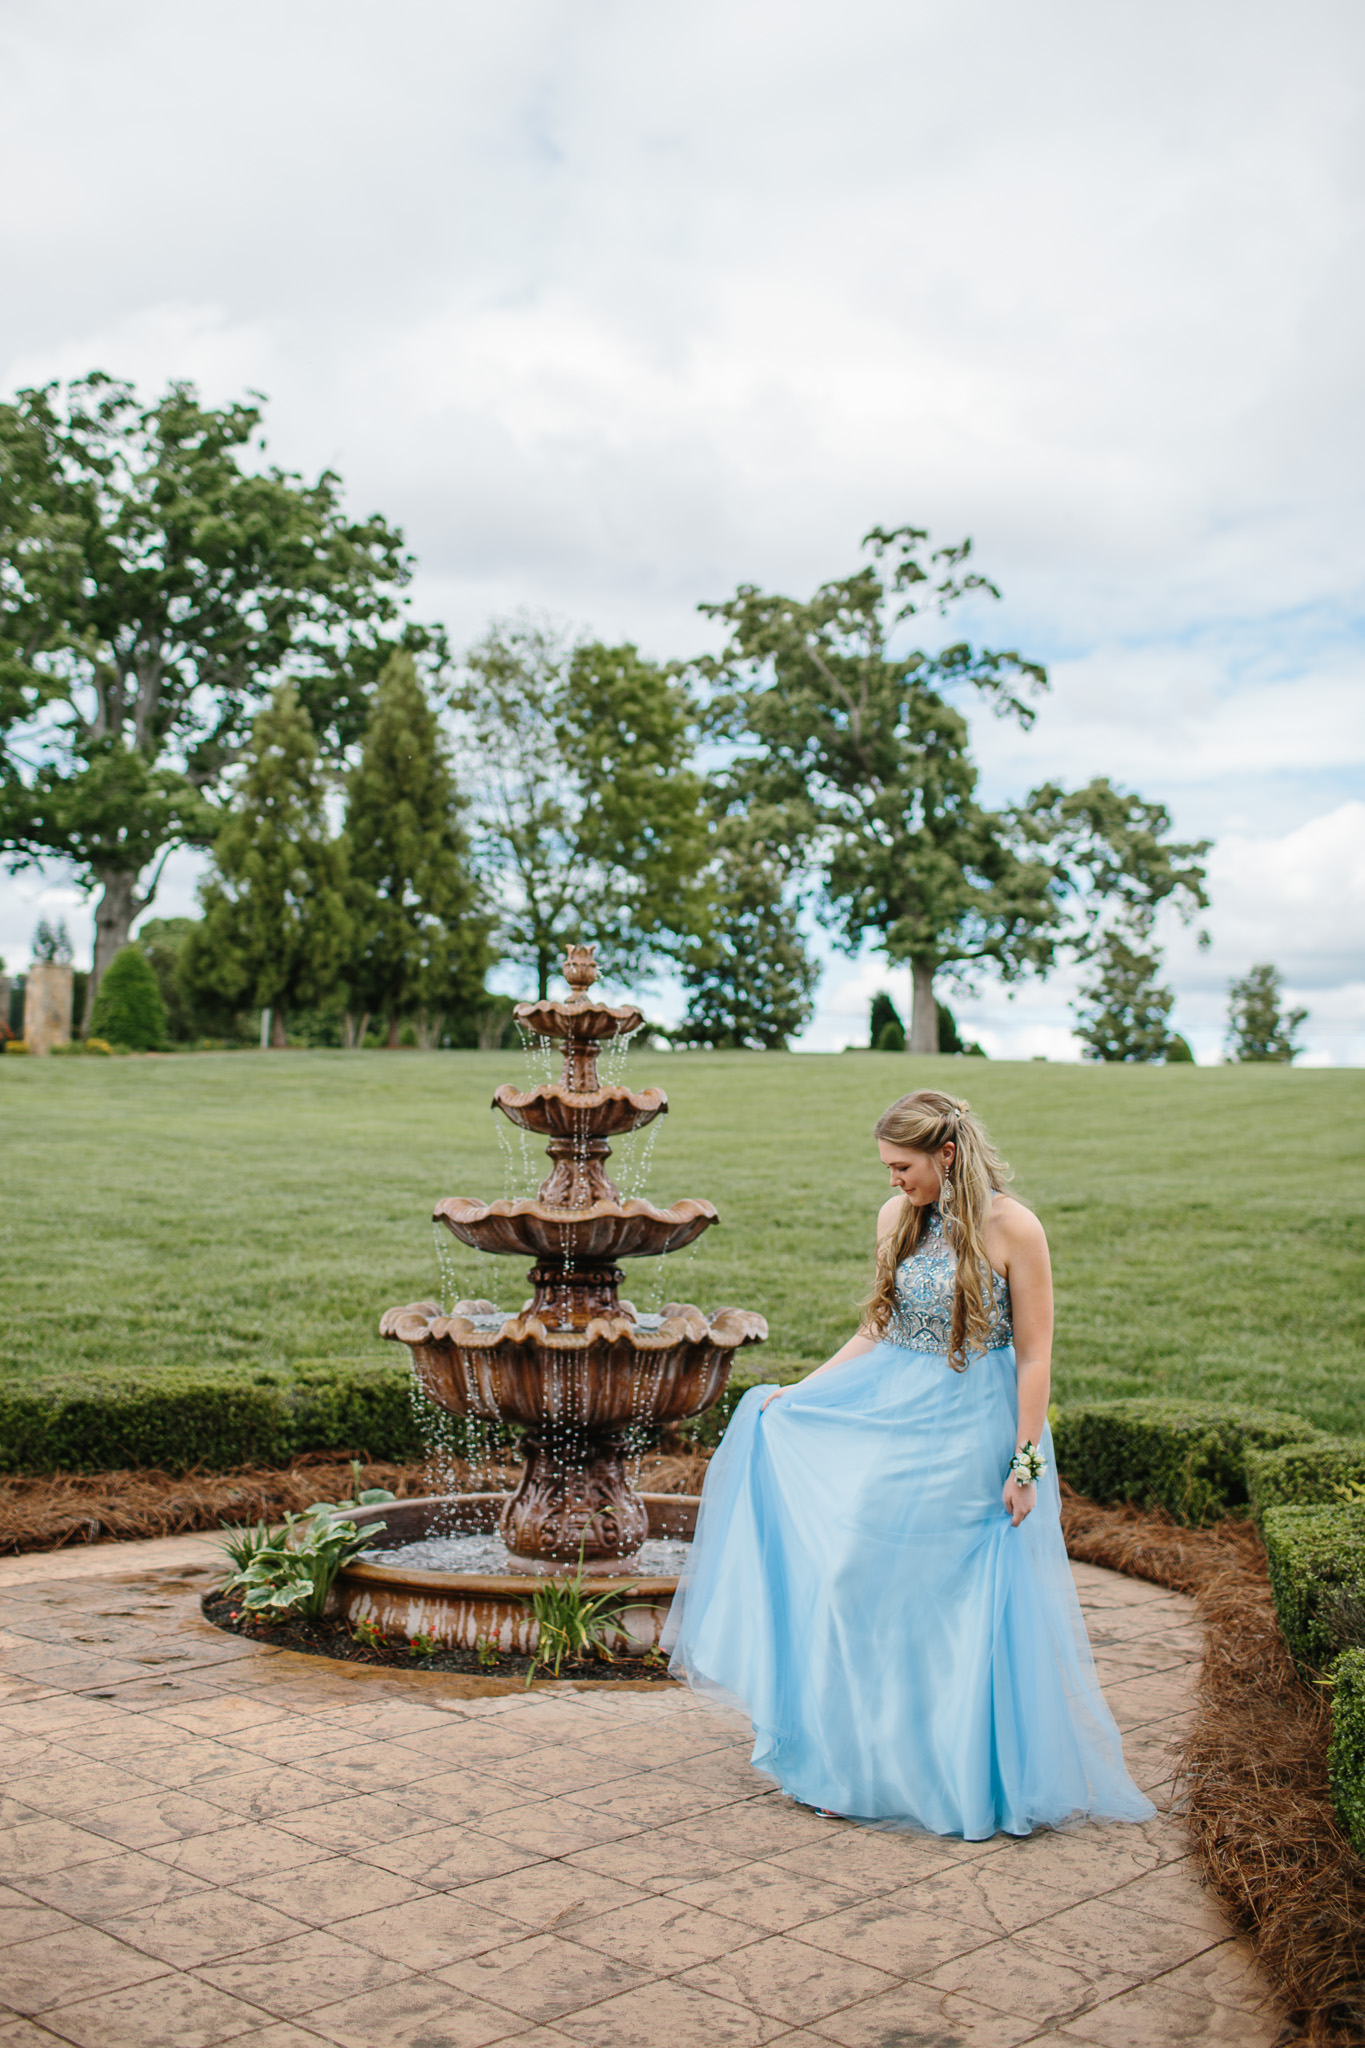 jennichandlerphotography_2017Prom_WEB-69.jpg